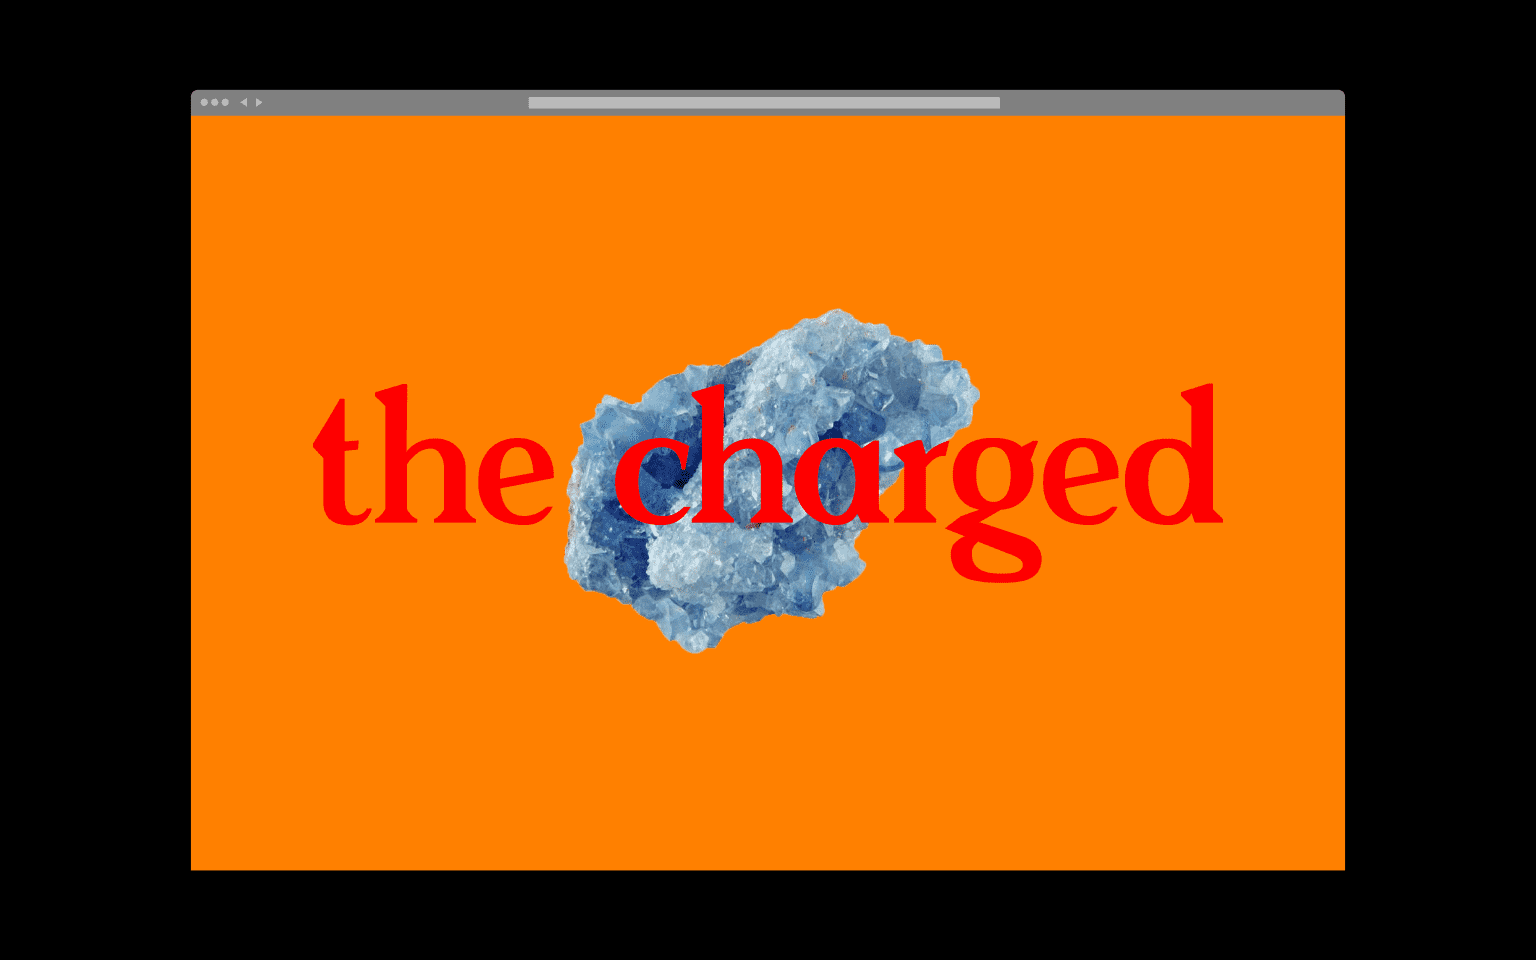 The Charged